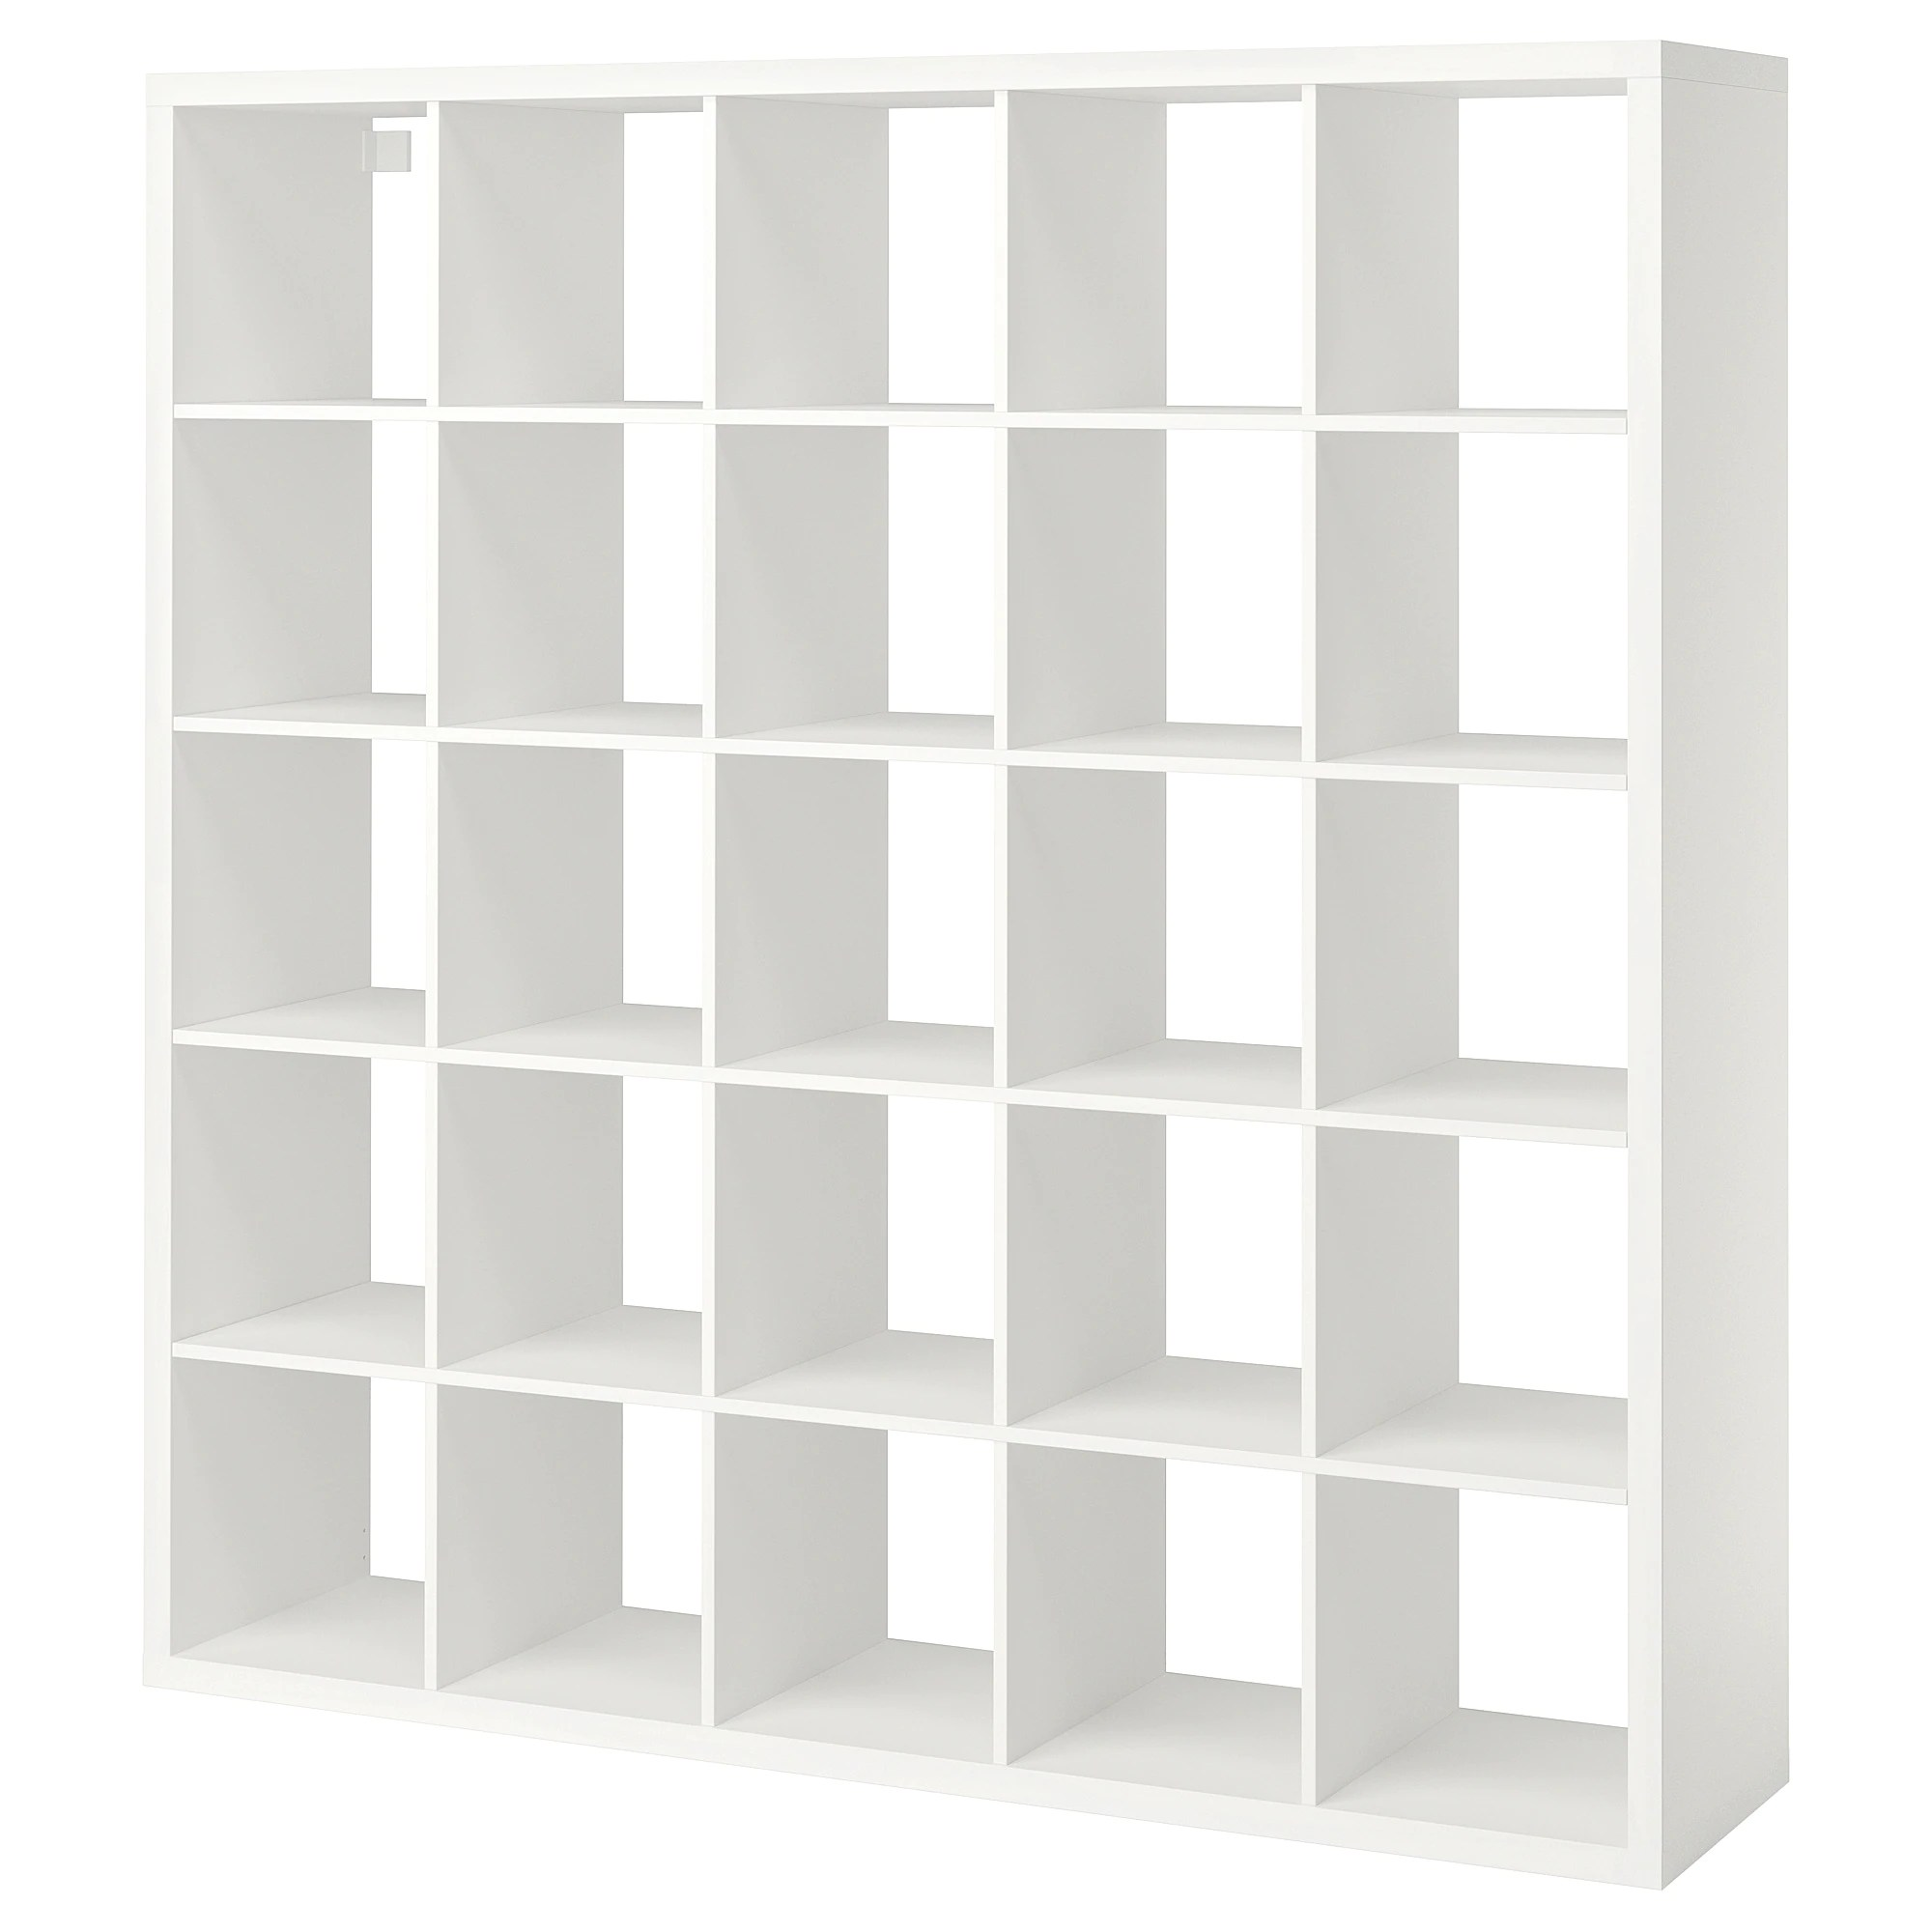 Wit Hoekbureau Ikea.Ikea Expedit Laden Built In Ikea Bookshelf Full Wall 8 Steps With